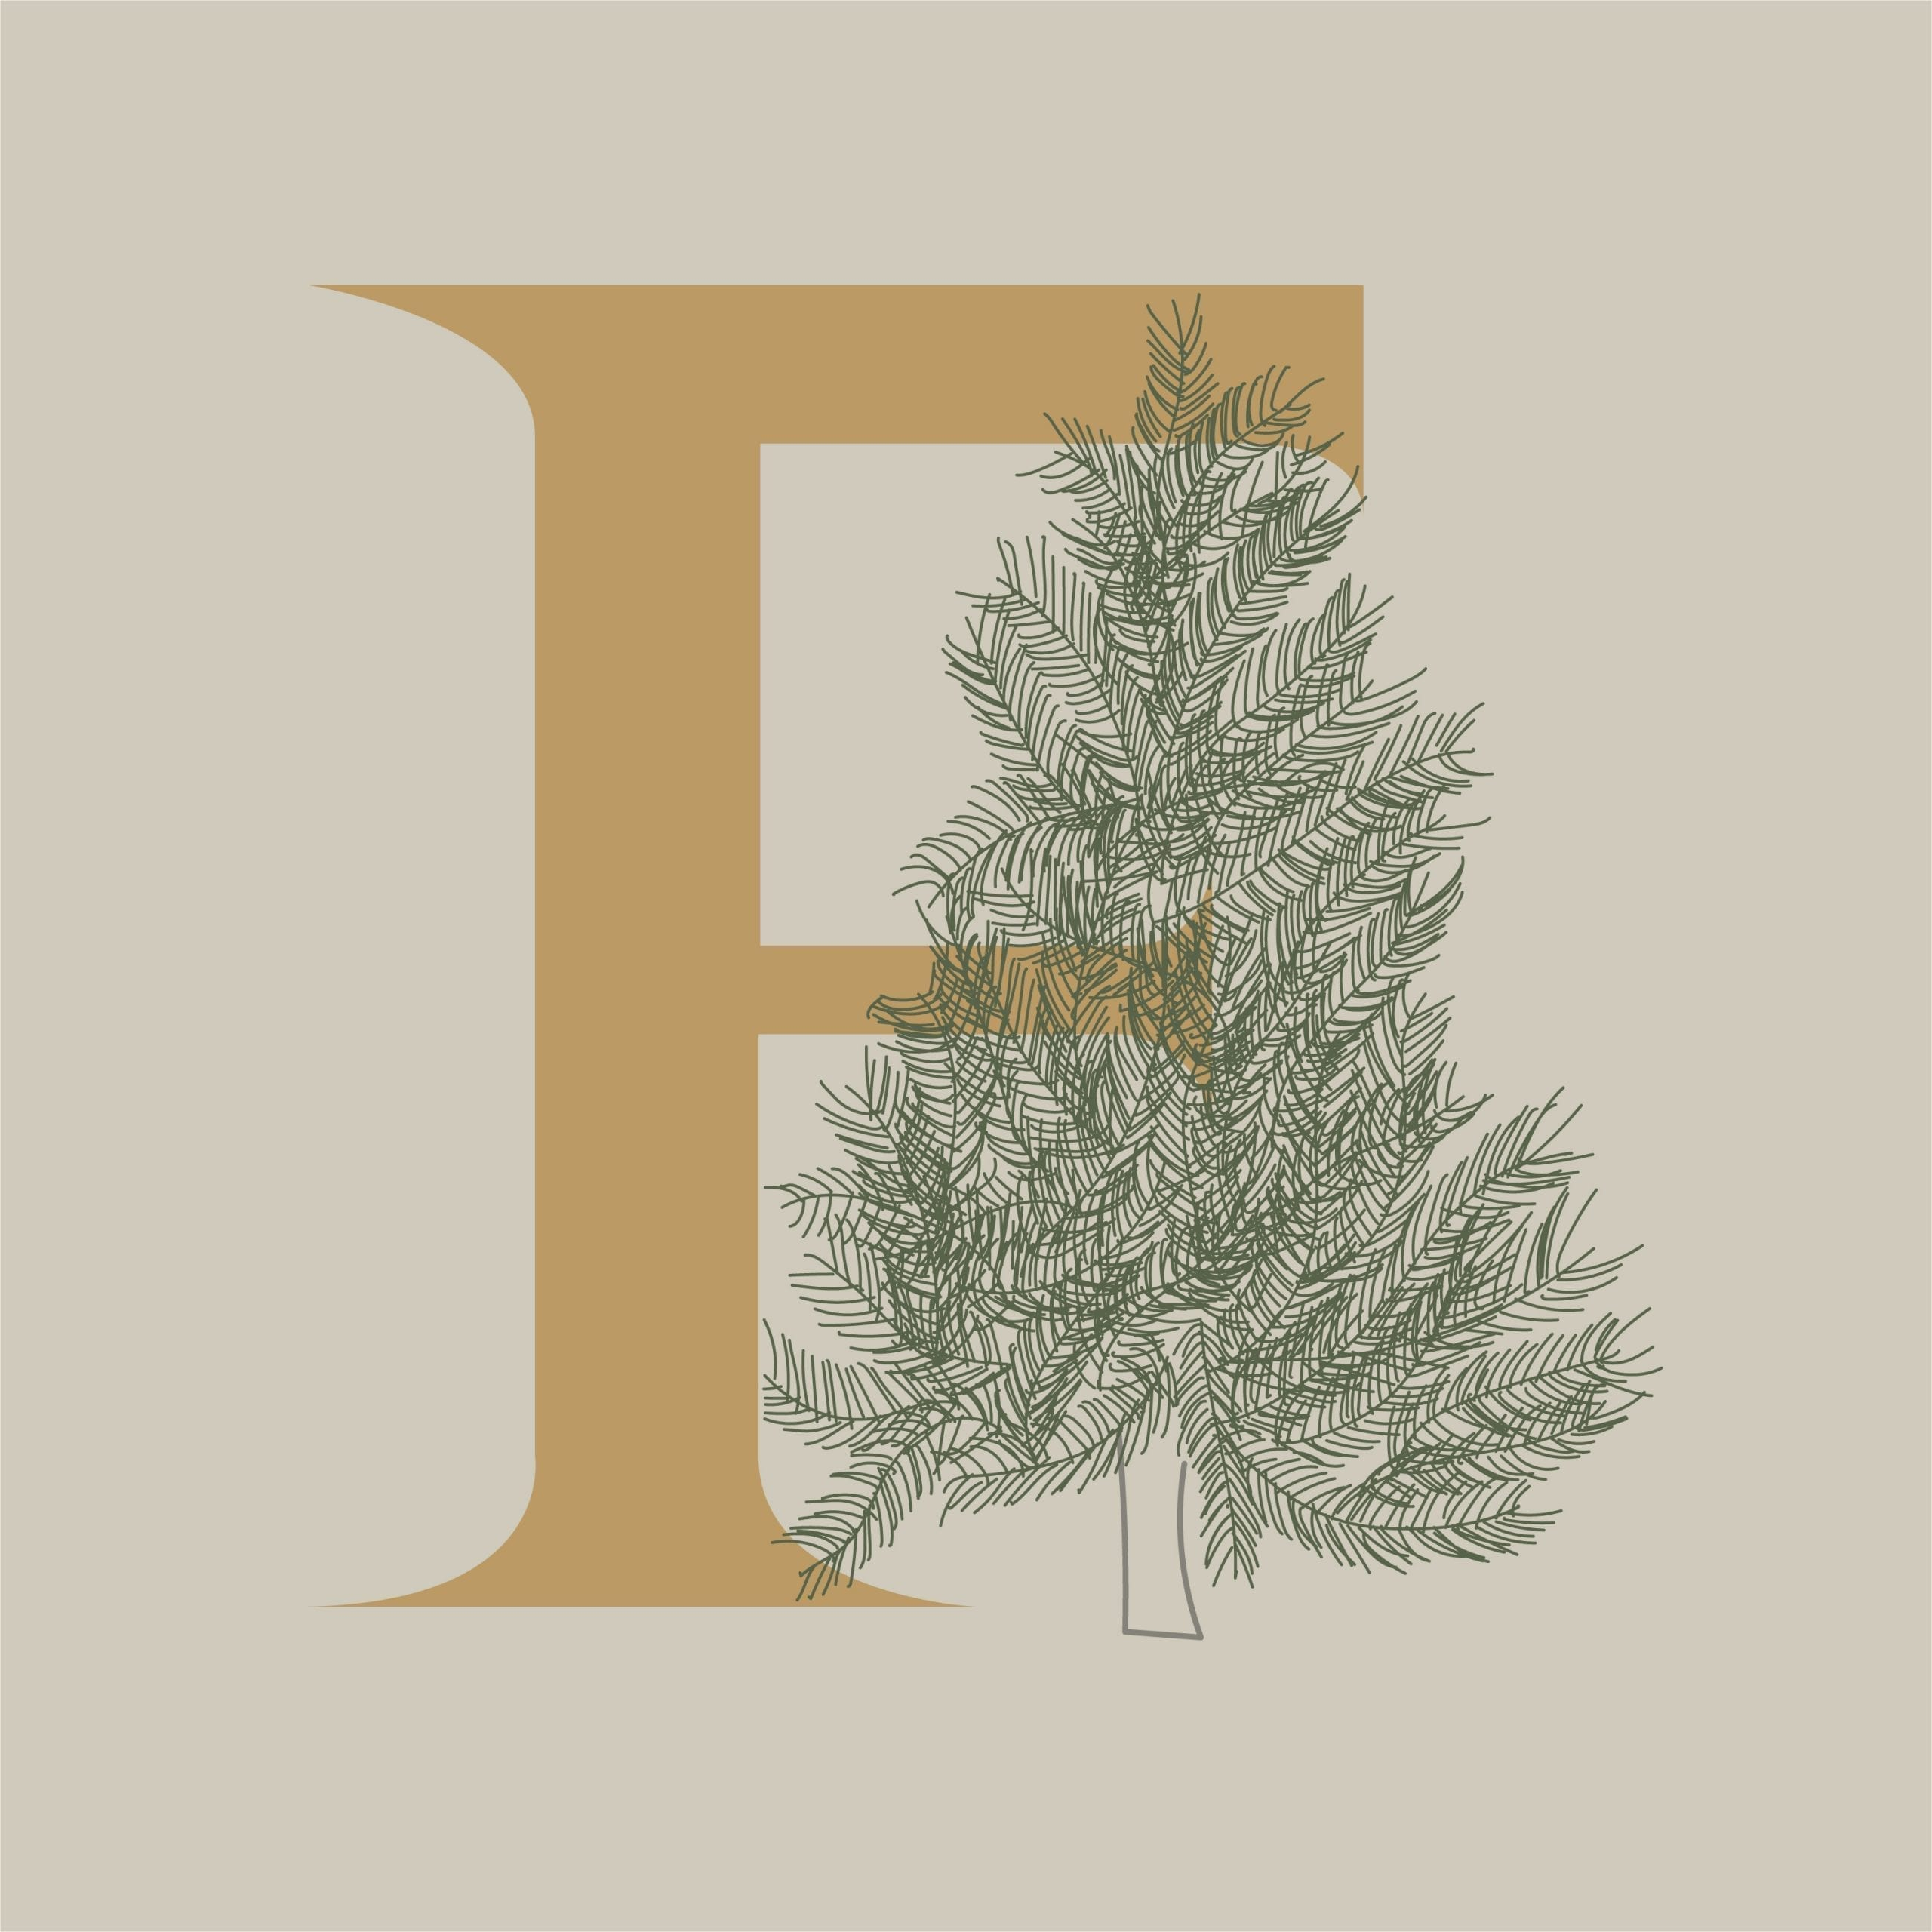 the letter F with a fraser fir